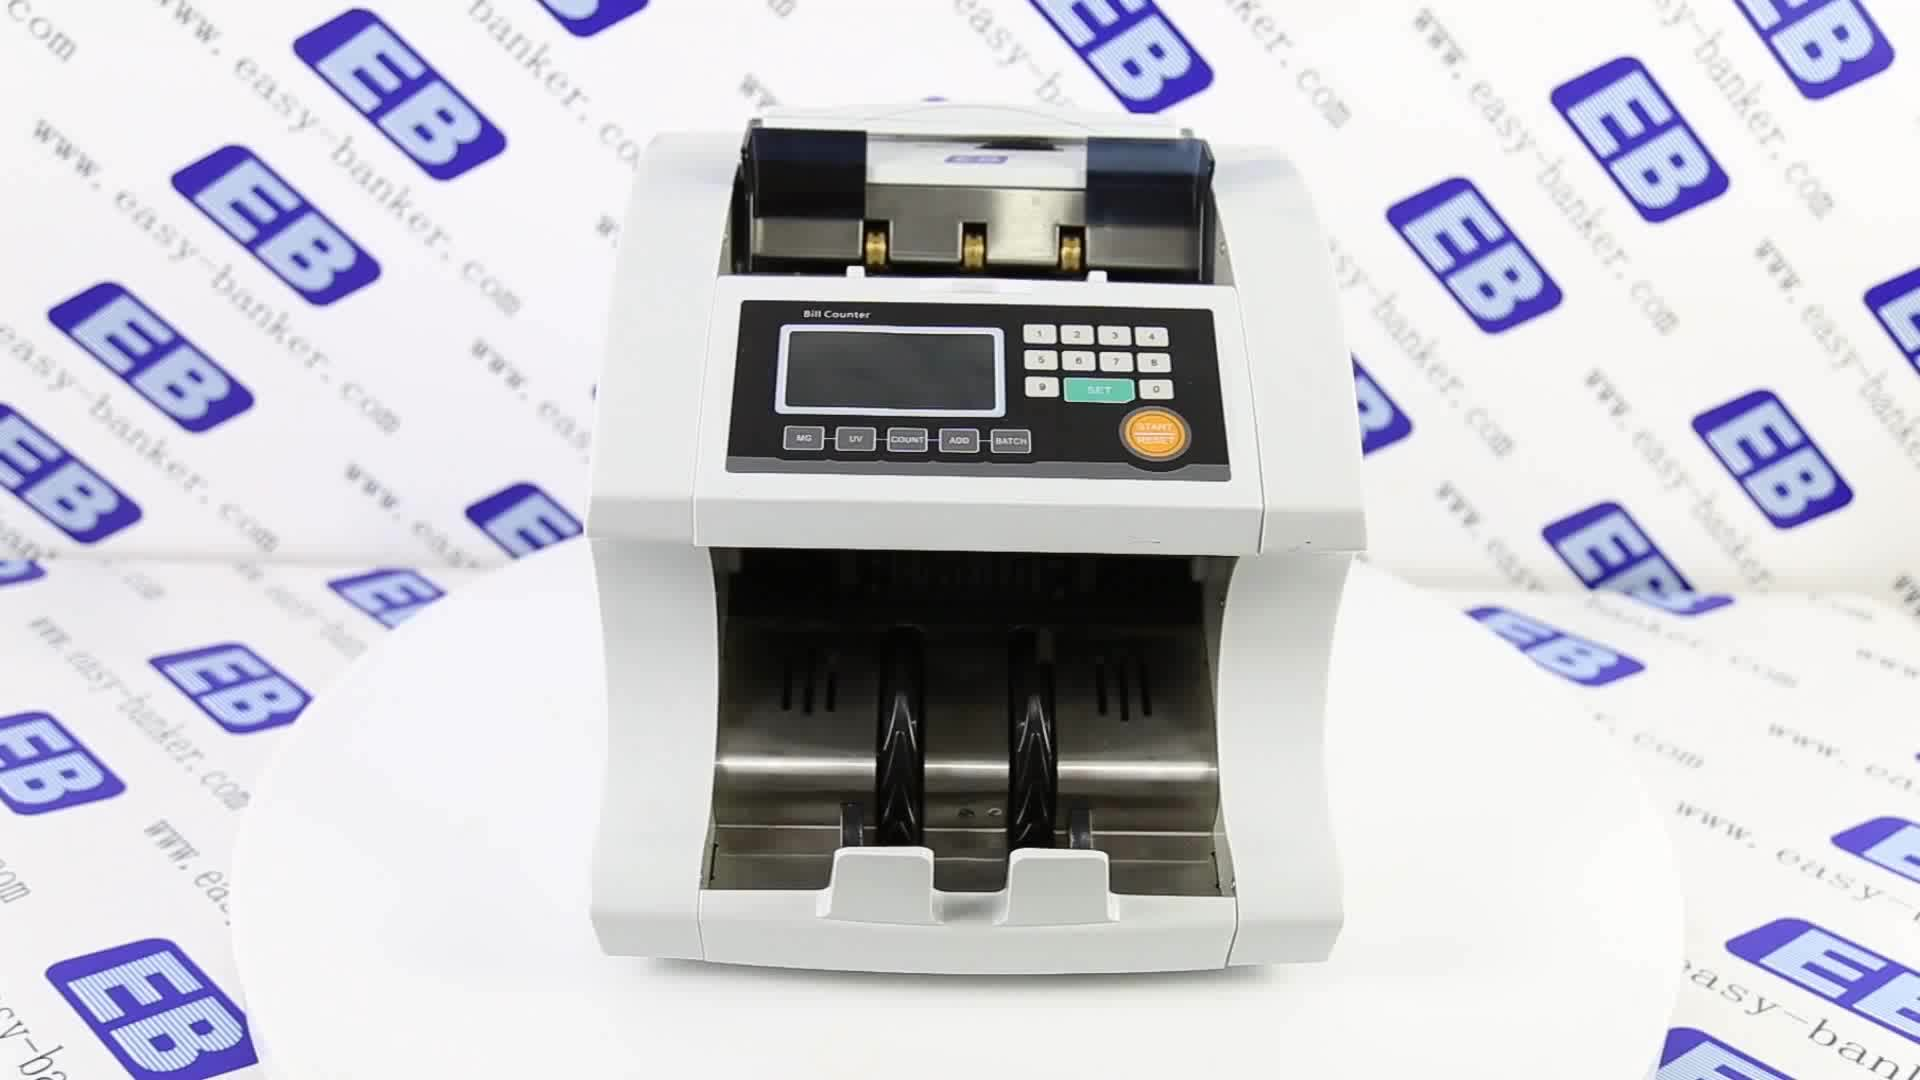 Money Counter Multi-Function Counting Machine Bank Equipment LD-2100